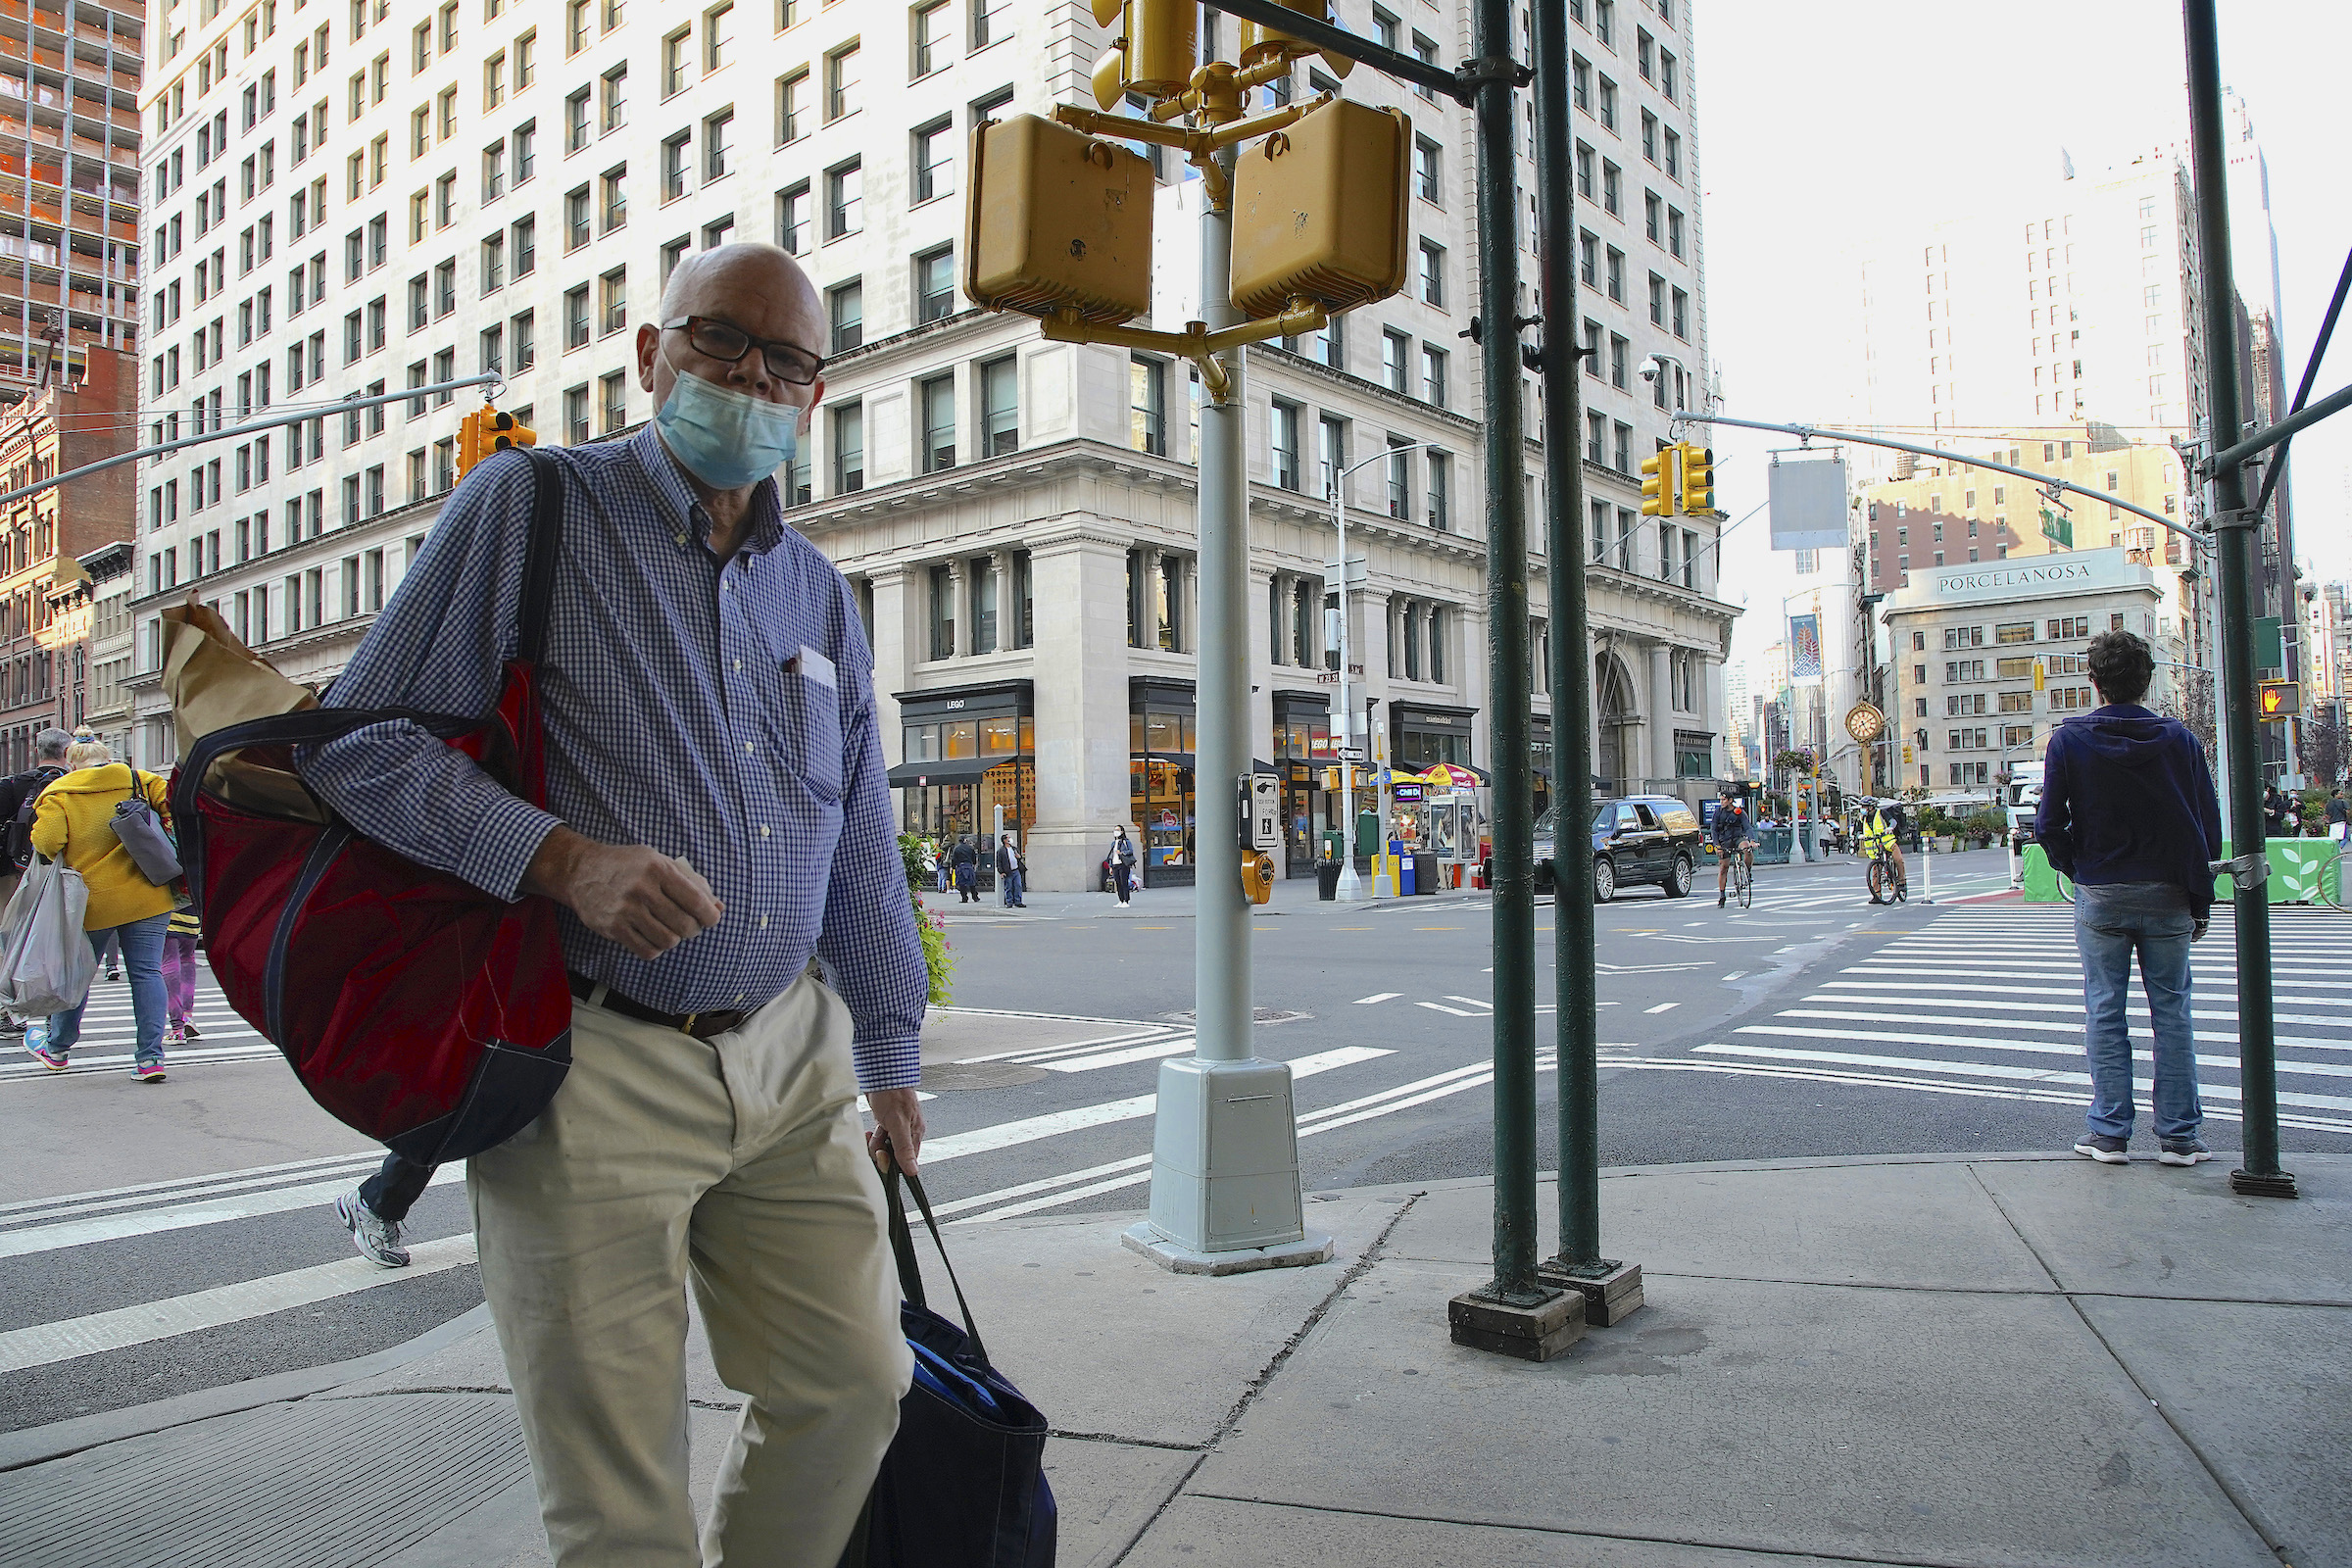 A man wearing a protective mask walks along the sidewalk in Madison Square during Phase 4 of re-opening following restrictions imposed to slow the spread of coronavirus on Sept. 22, 2020, in New York City